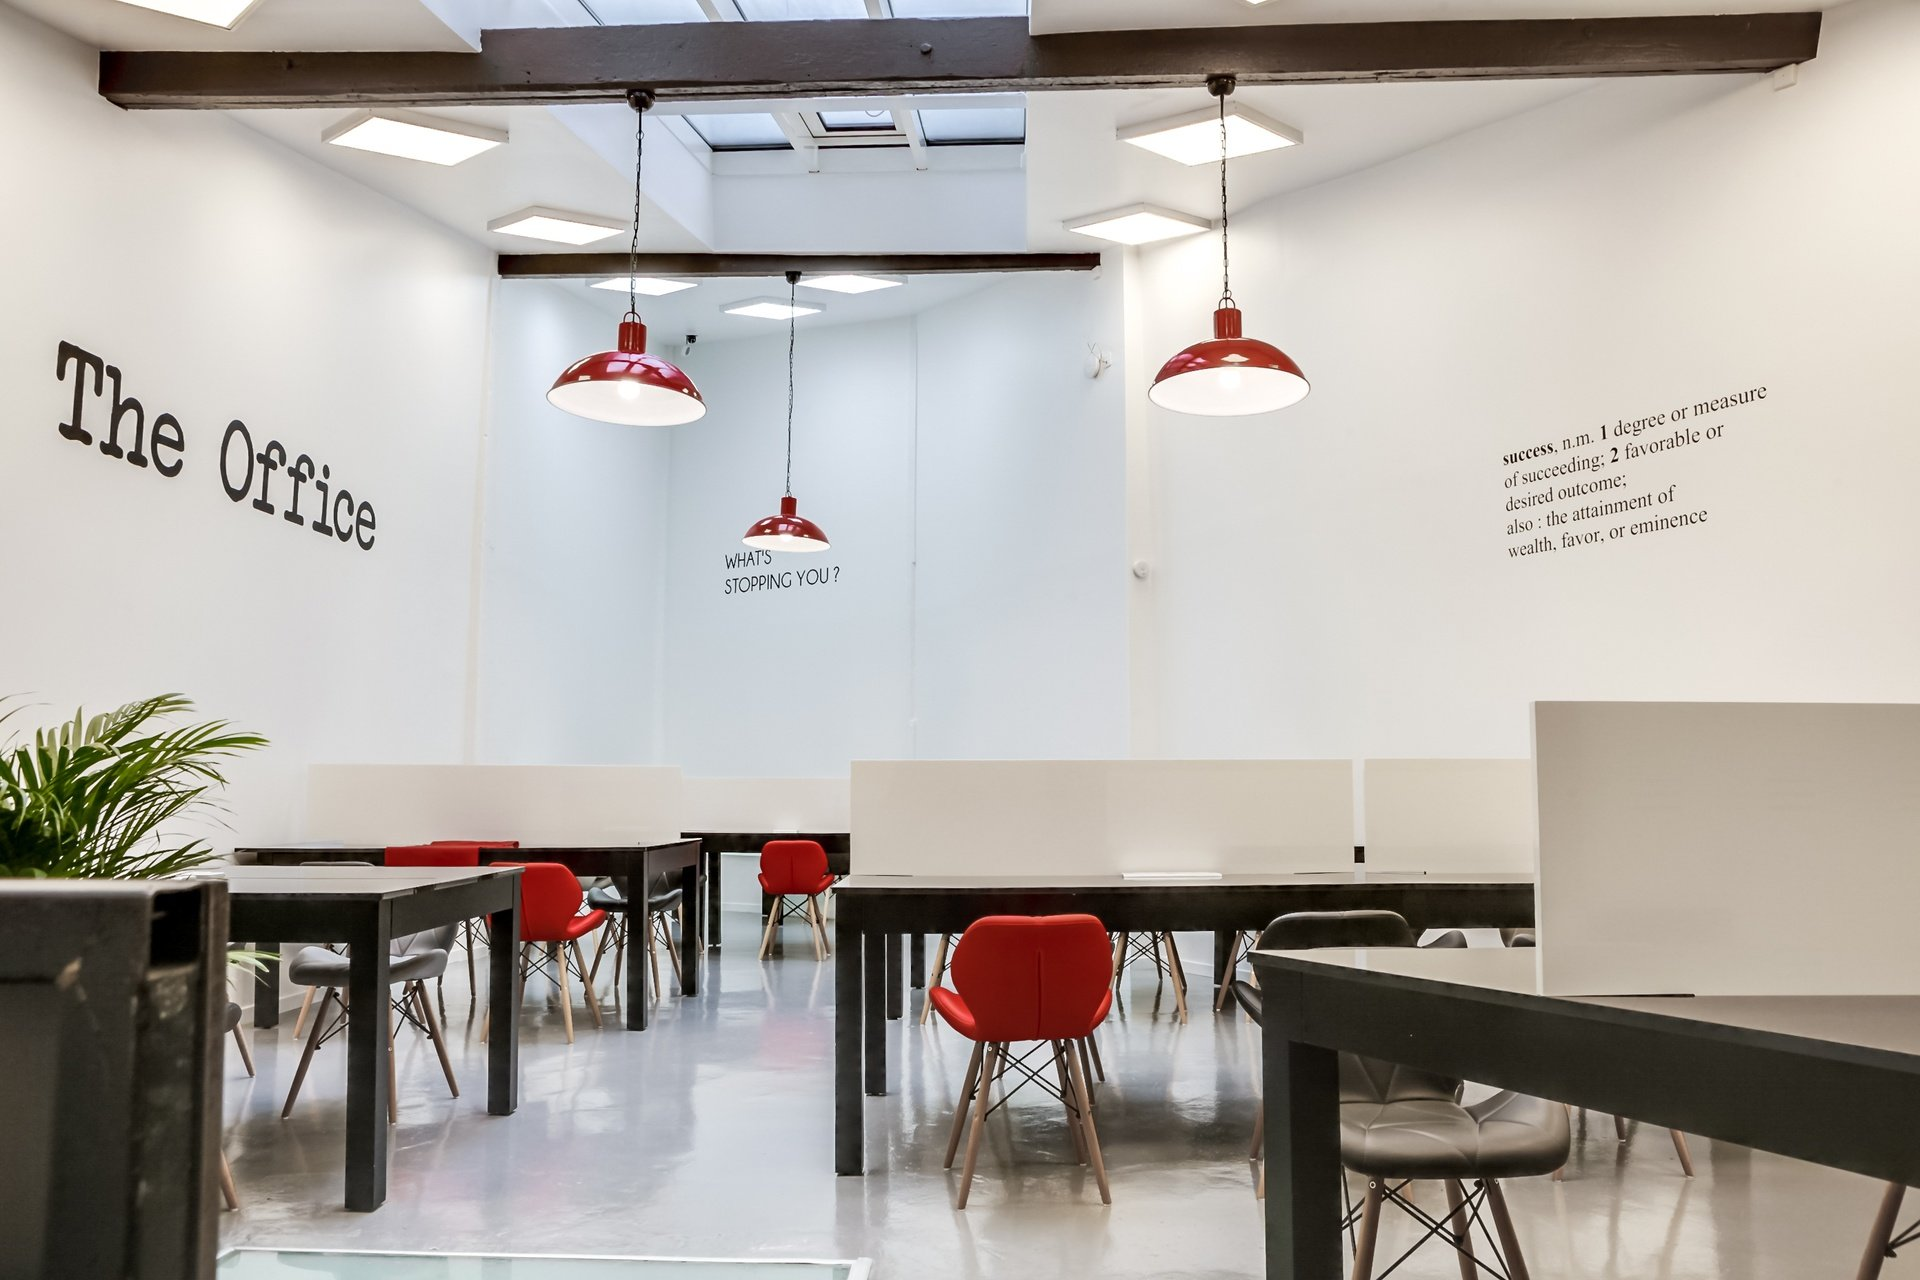 Paris corporate event venues Coworking Space The Office - COWORKING PLACE image 0